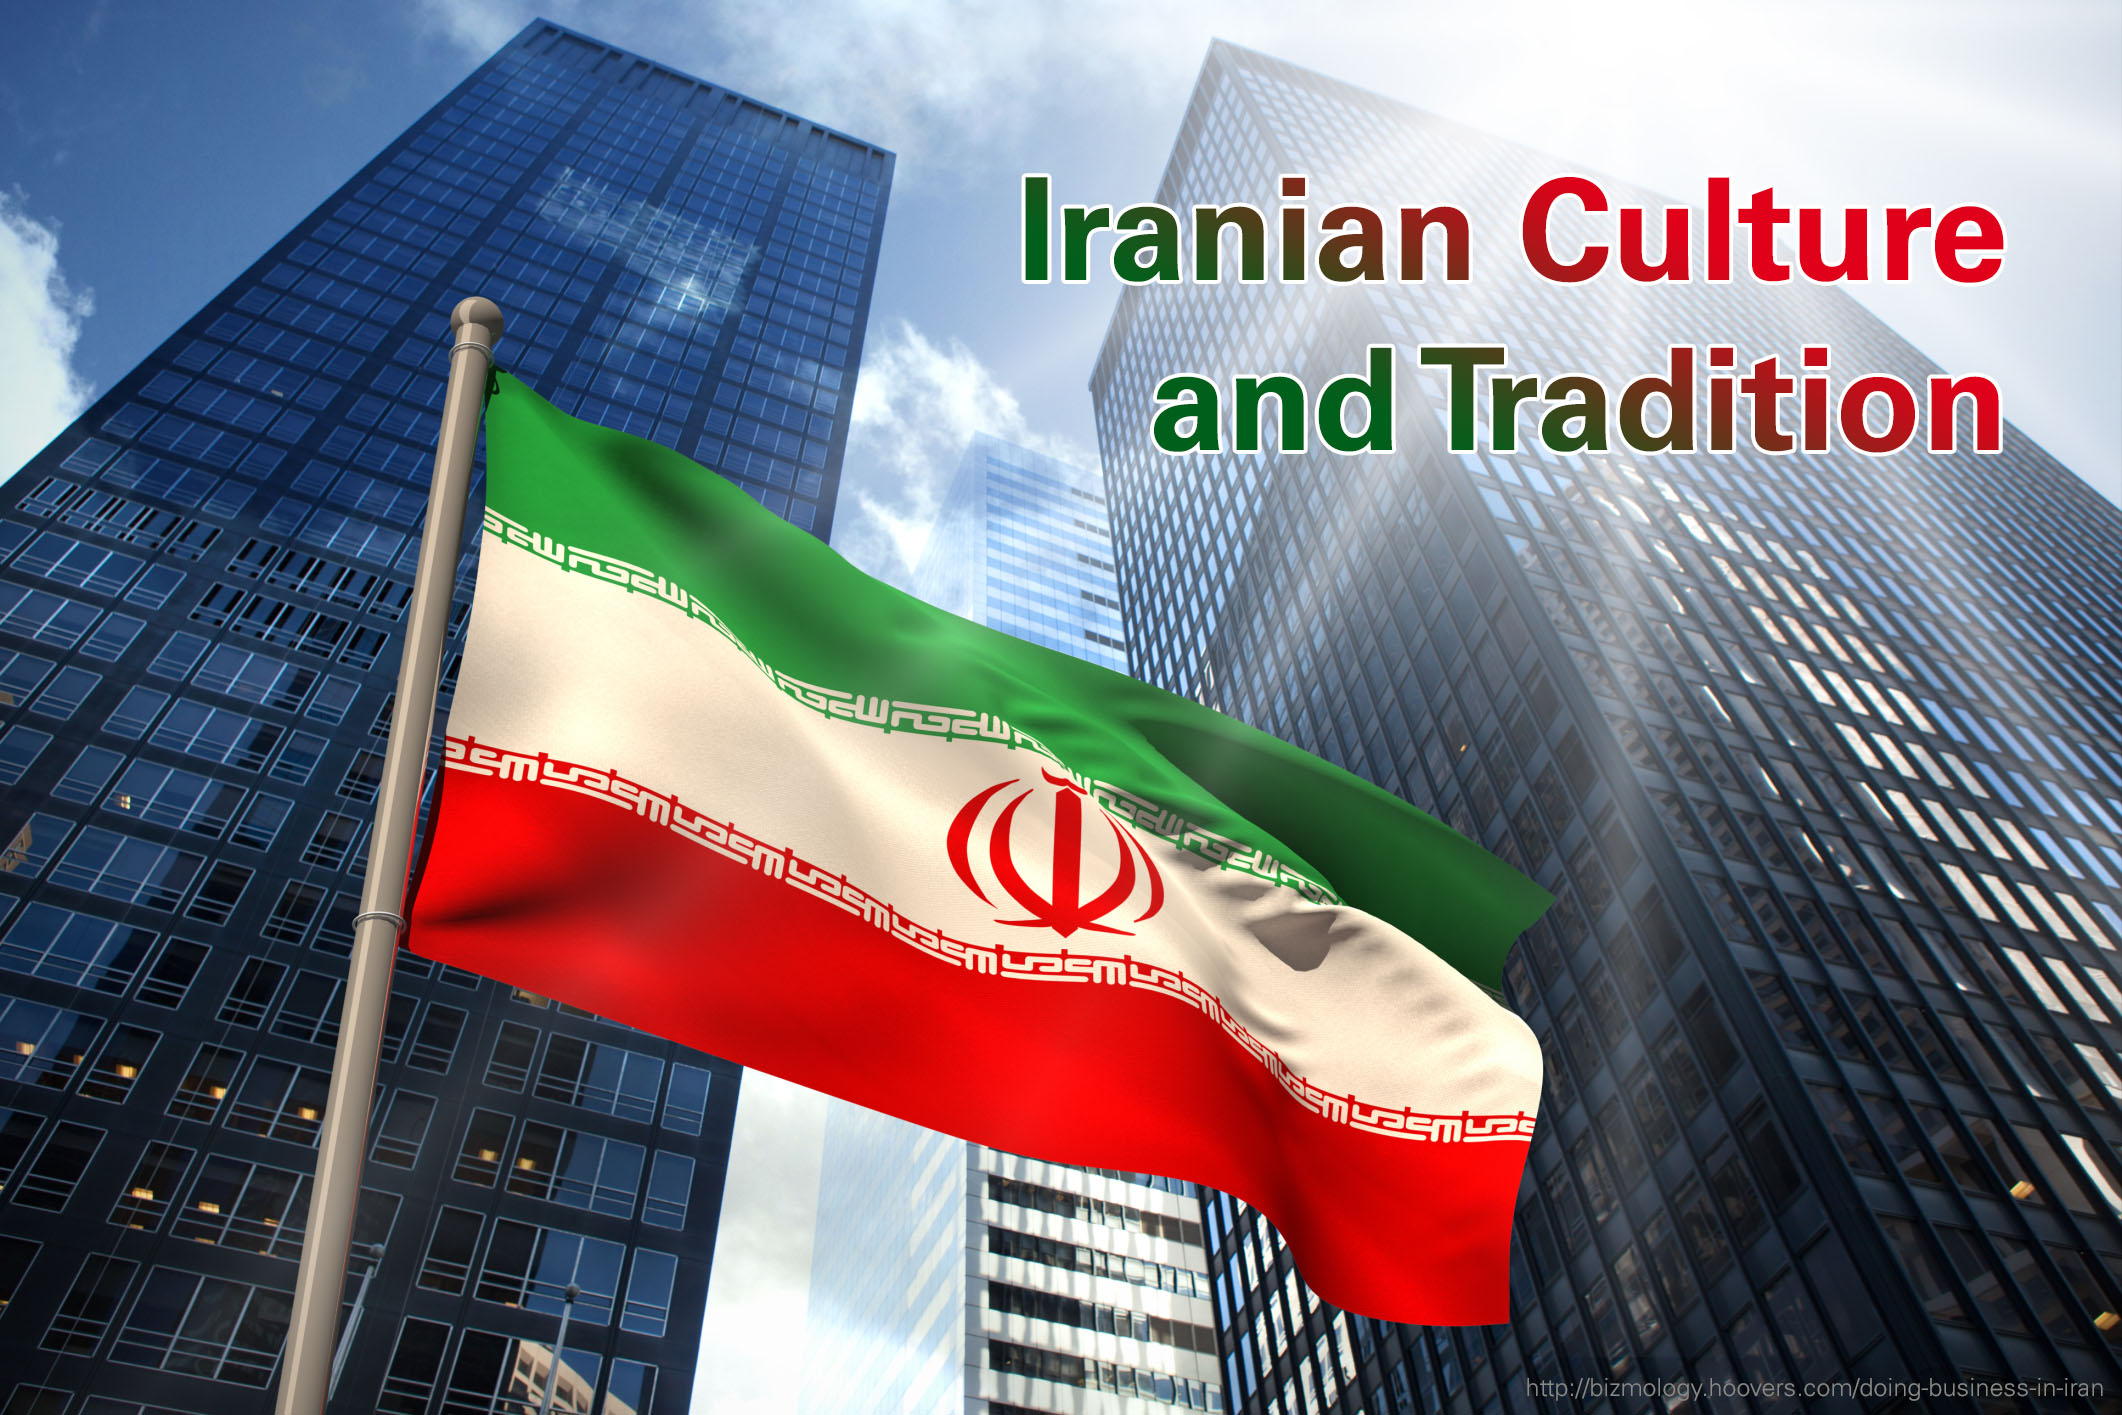 Iranian Culture and Tradition - Globalization Partners International